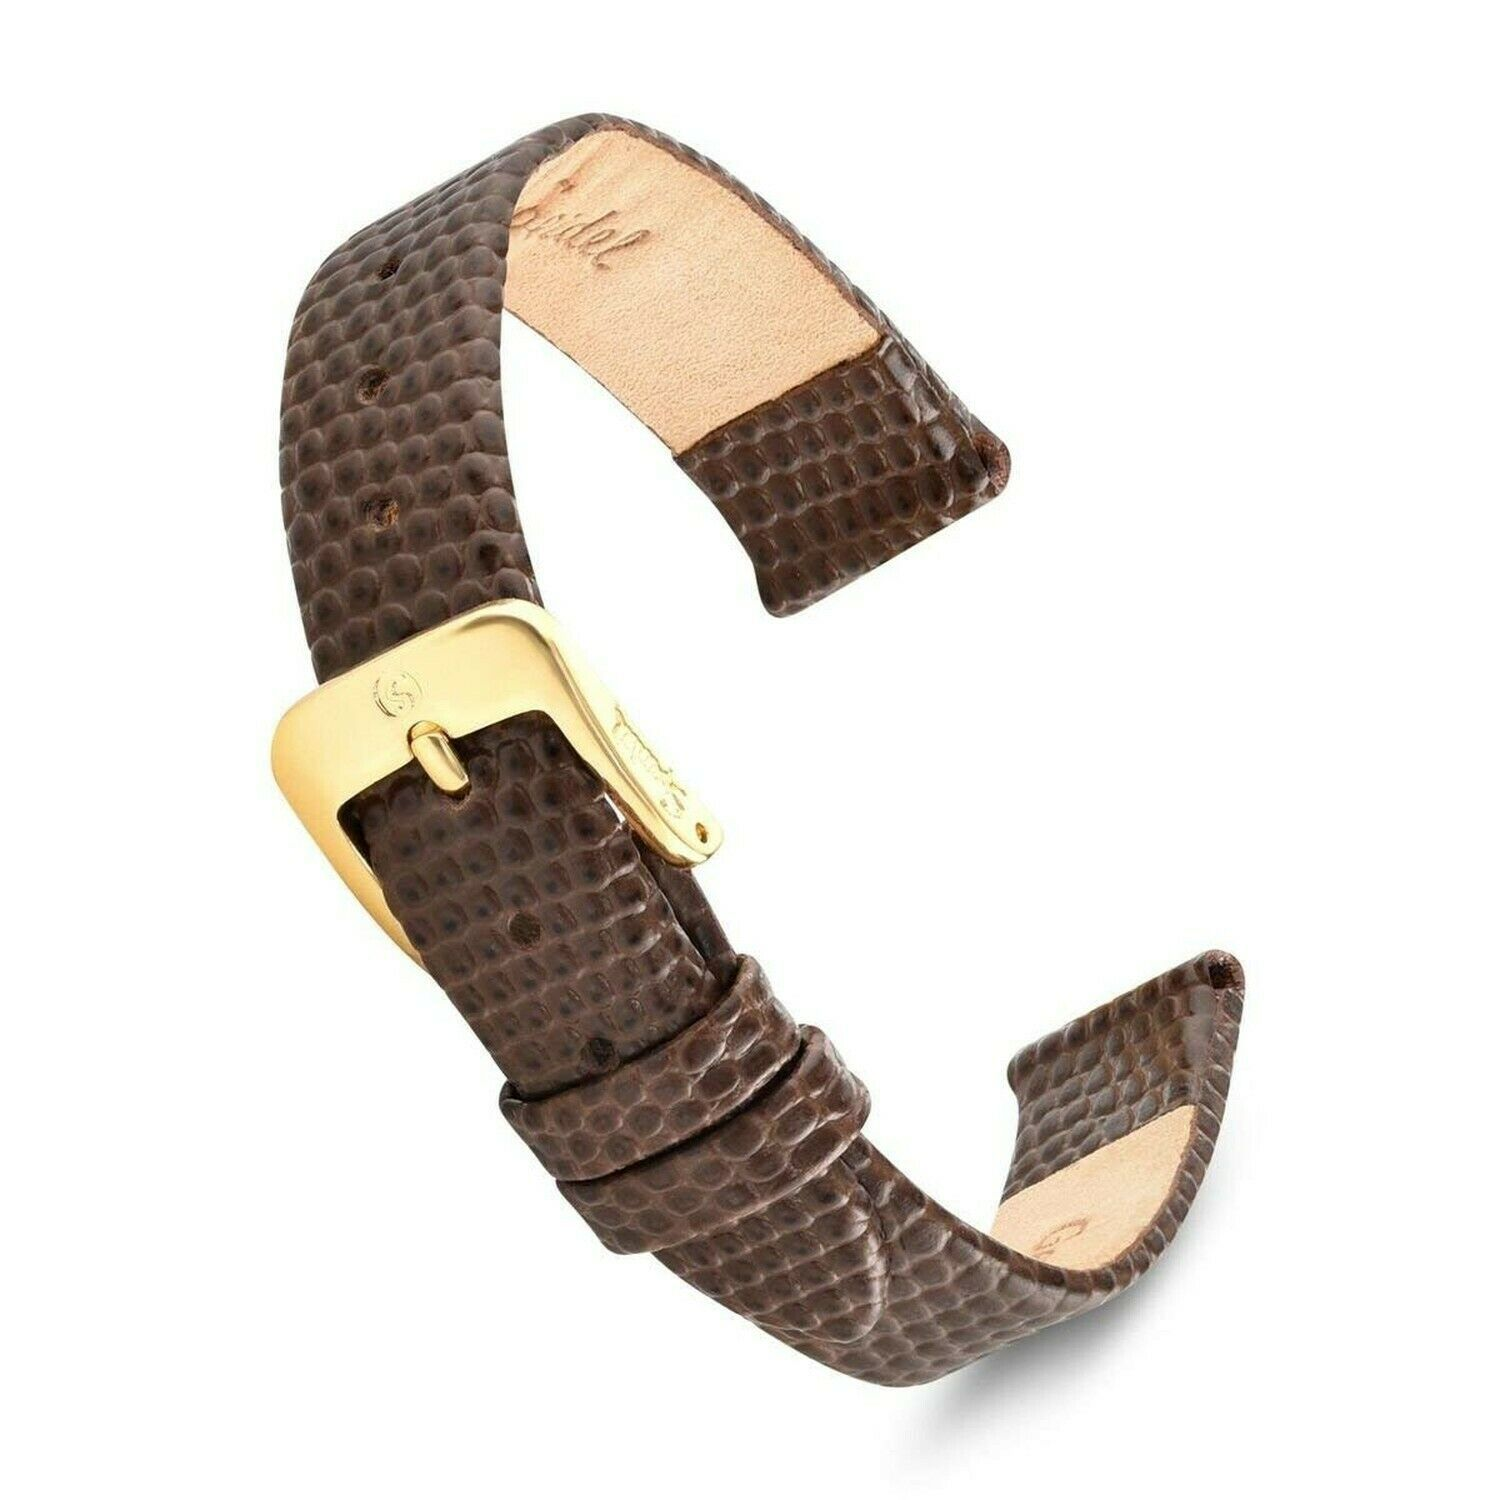 Primary image for Speidel Leather Lizard Grain Watch Band 8mm-20mm-Black,Brown, Red,W... SHIPSFREE